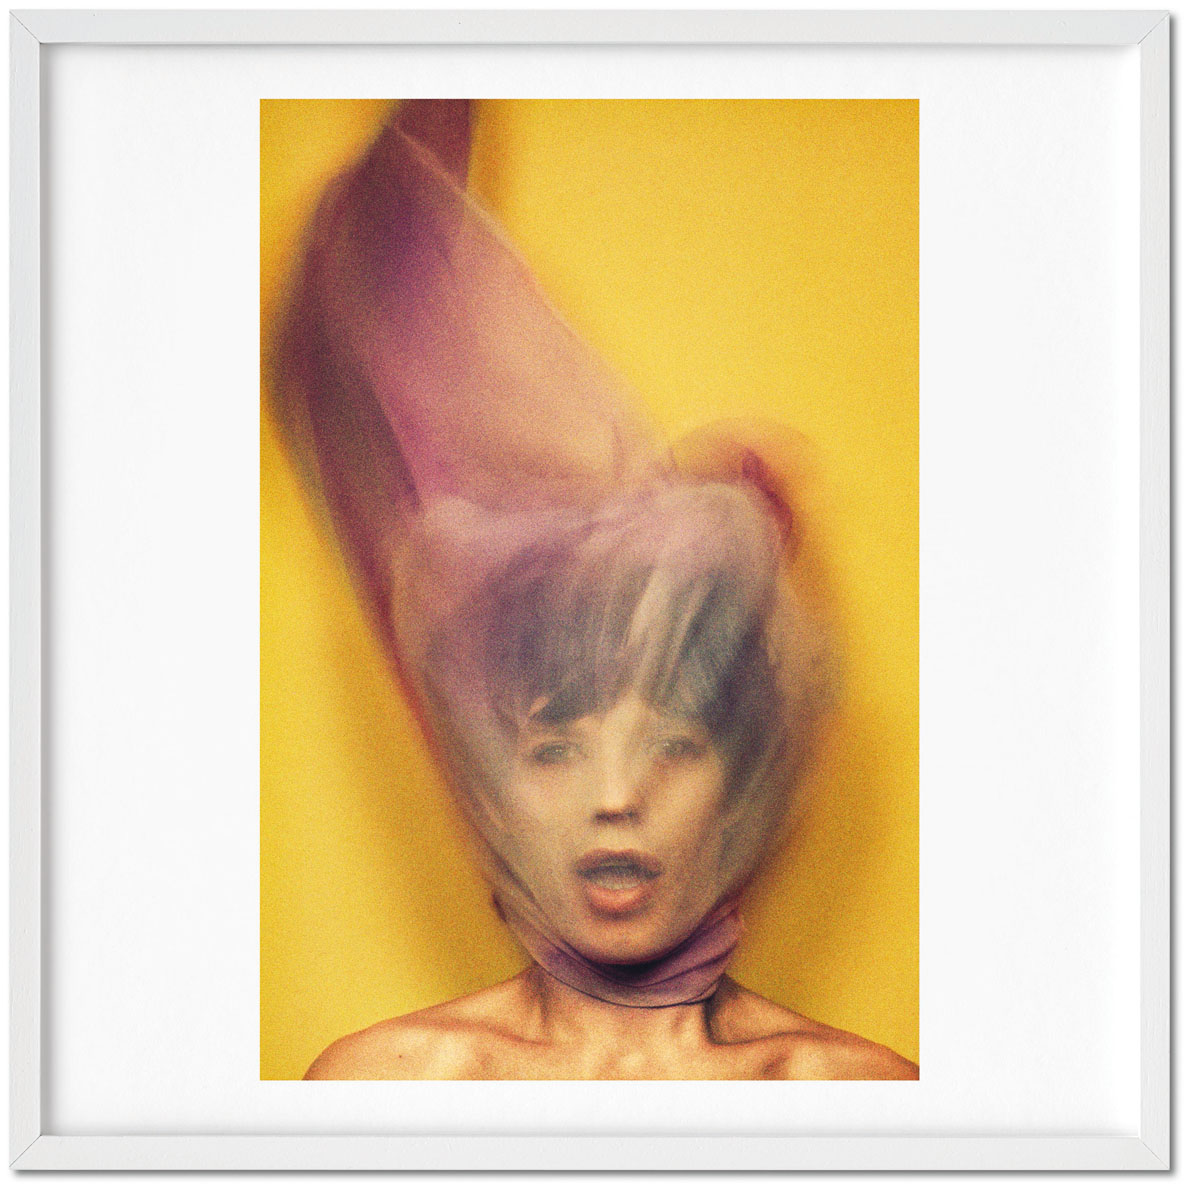 Mick Jagger (1973), signed by photographer David Bailey